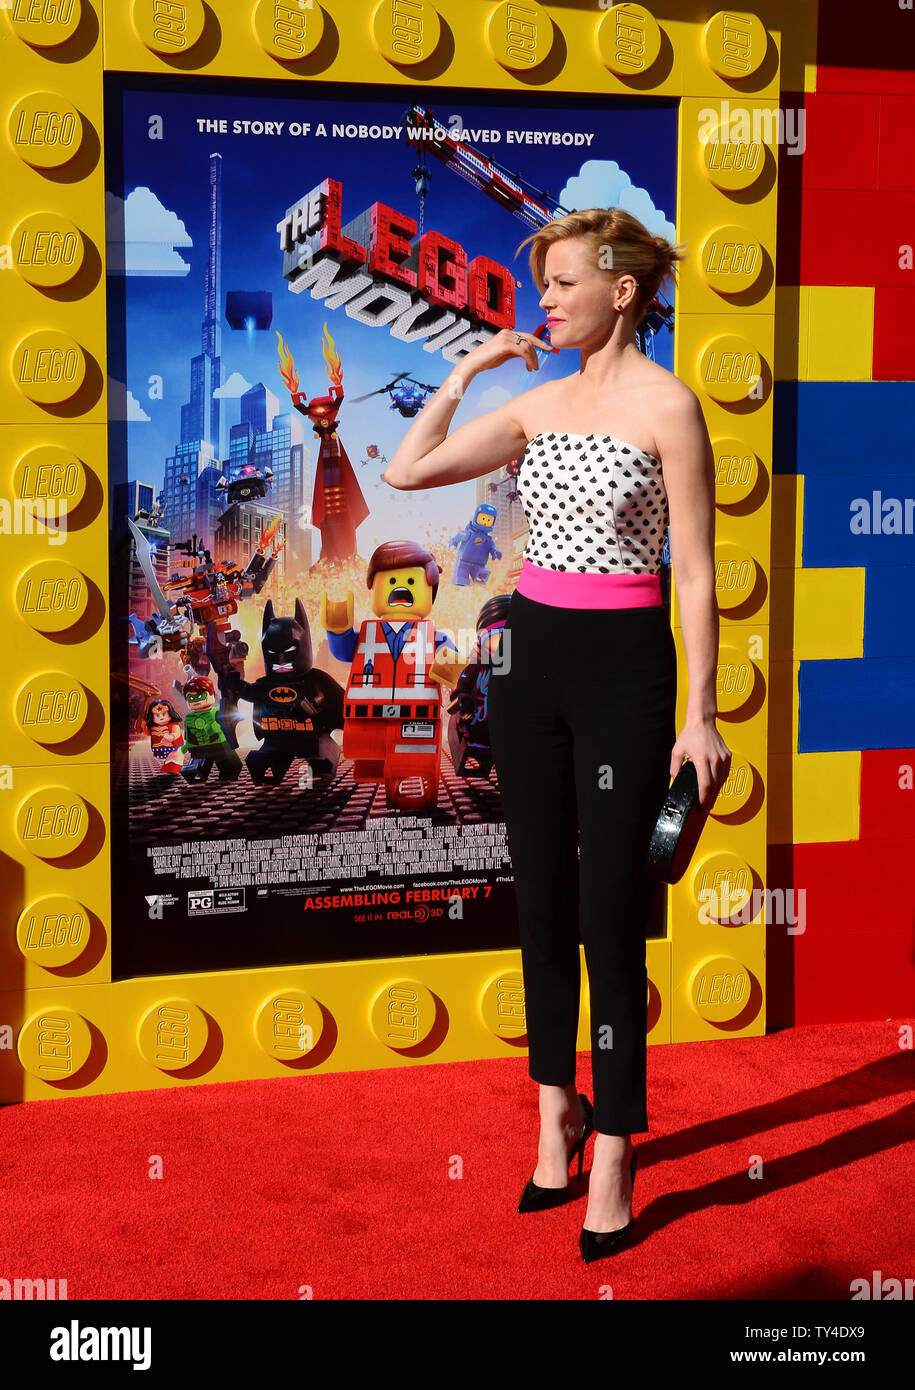 Cast Member Elizabeth Banks The Voice Of Wildstyle Lucy Attends The Premiere Of The Animated Comedy The Lego Movie At The Regency Village Theatre In The Westwood Section Of Los Angeles On February